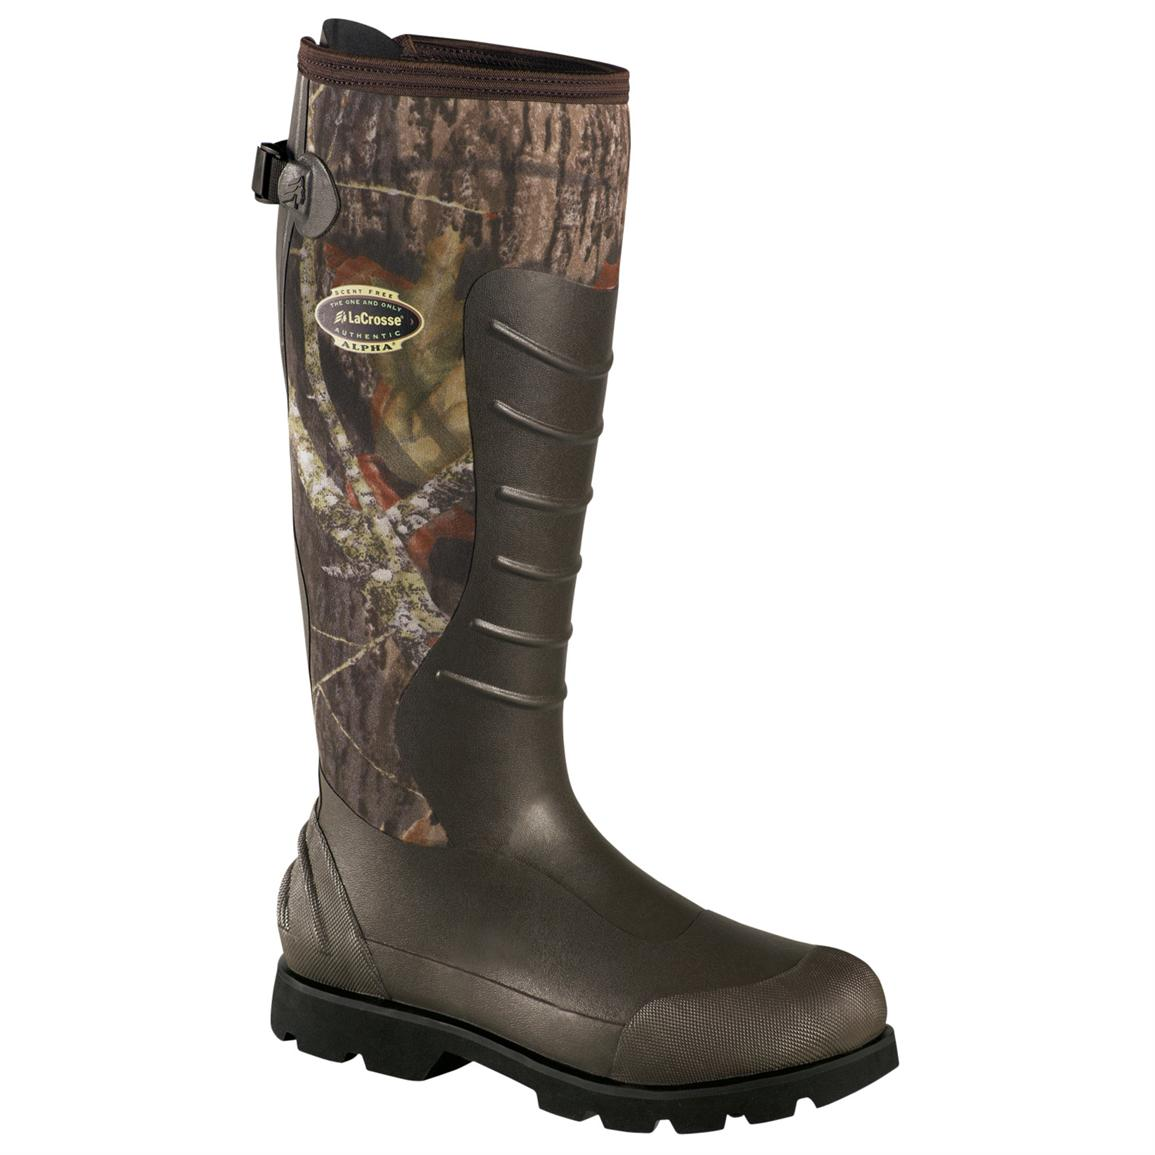 "Men's LaCrosse 18"" 5 mm Alpha Lite Boots, Mossy Oak Break-Up"